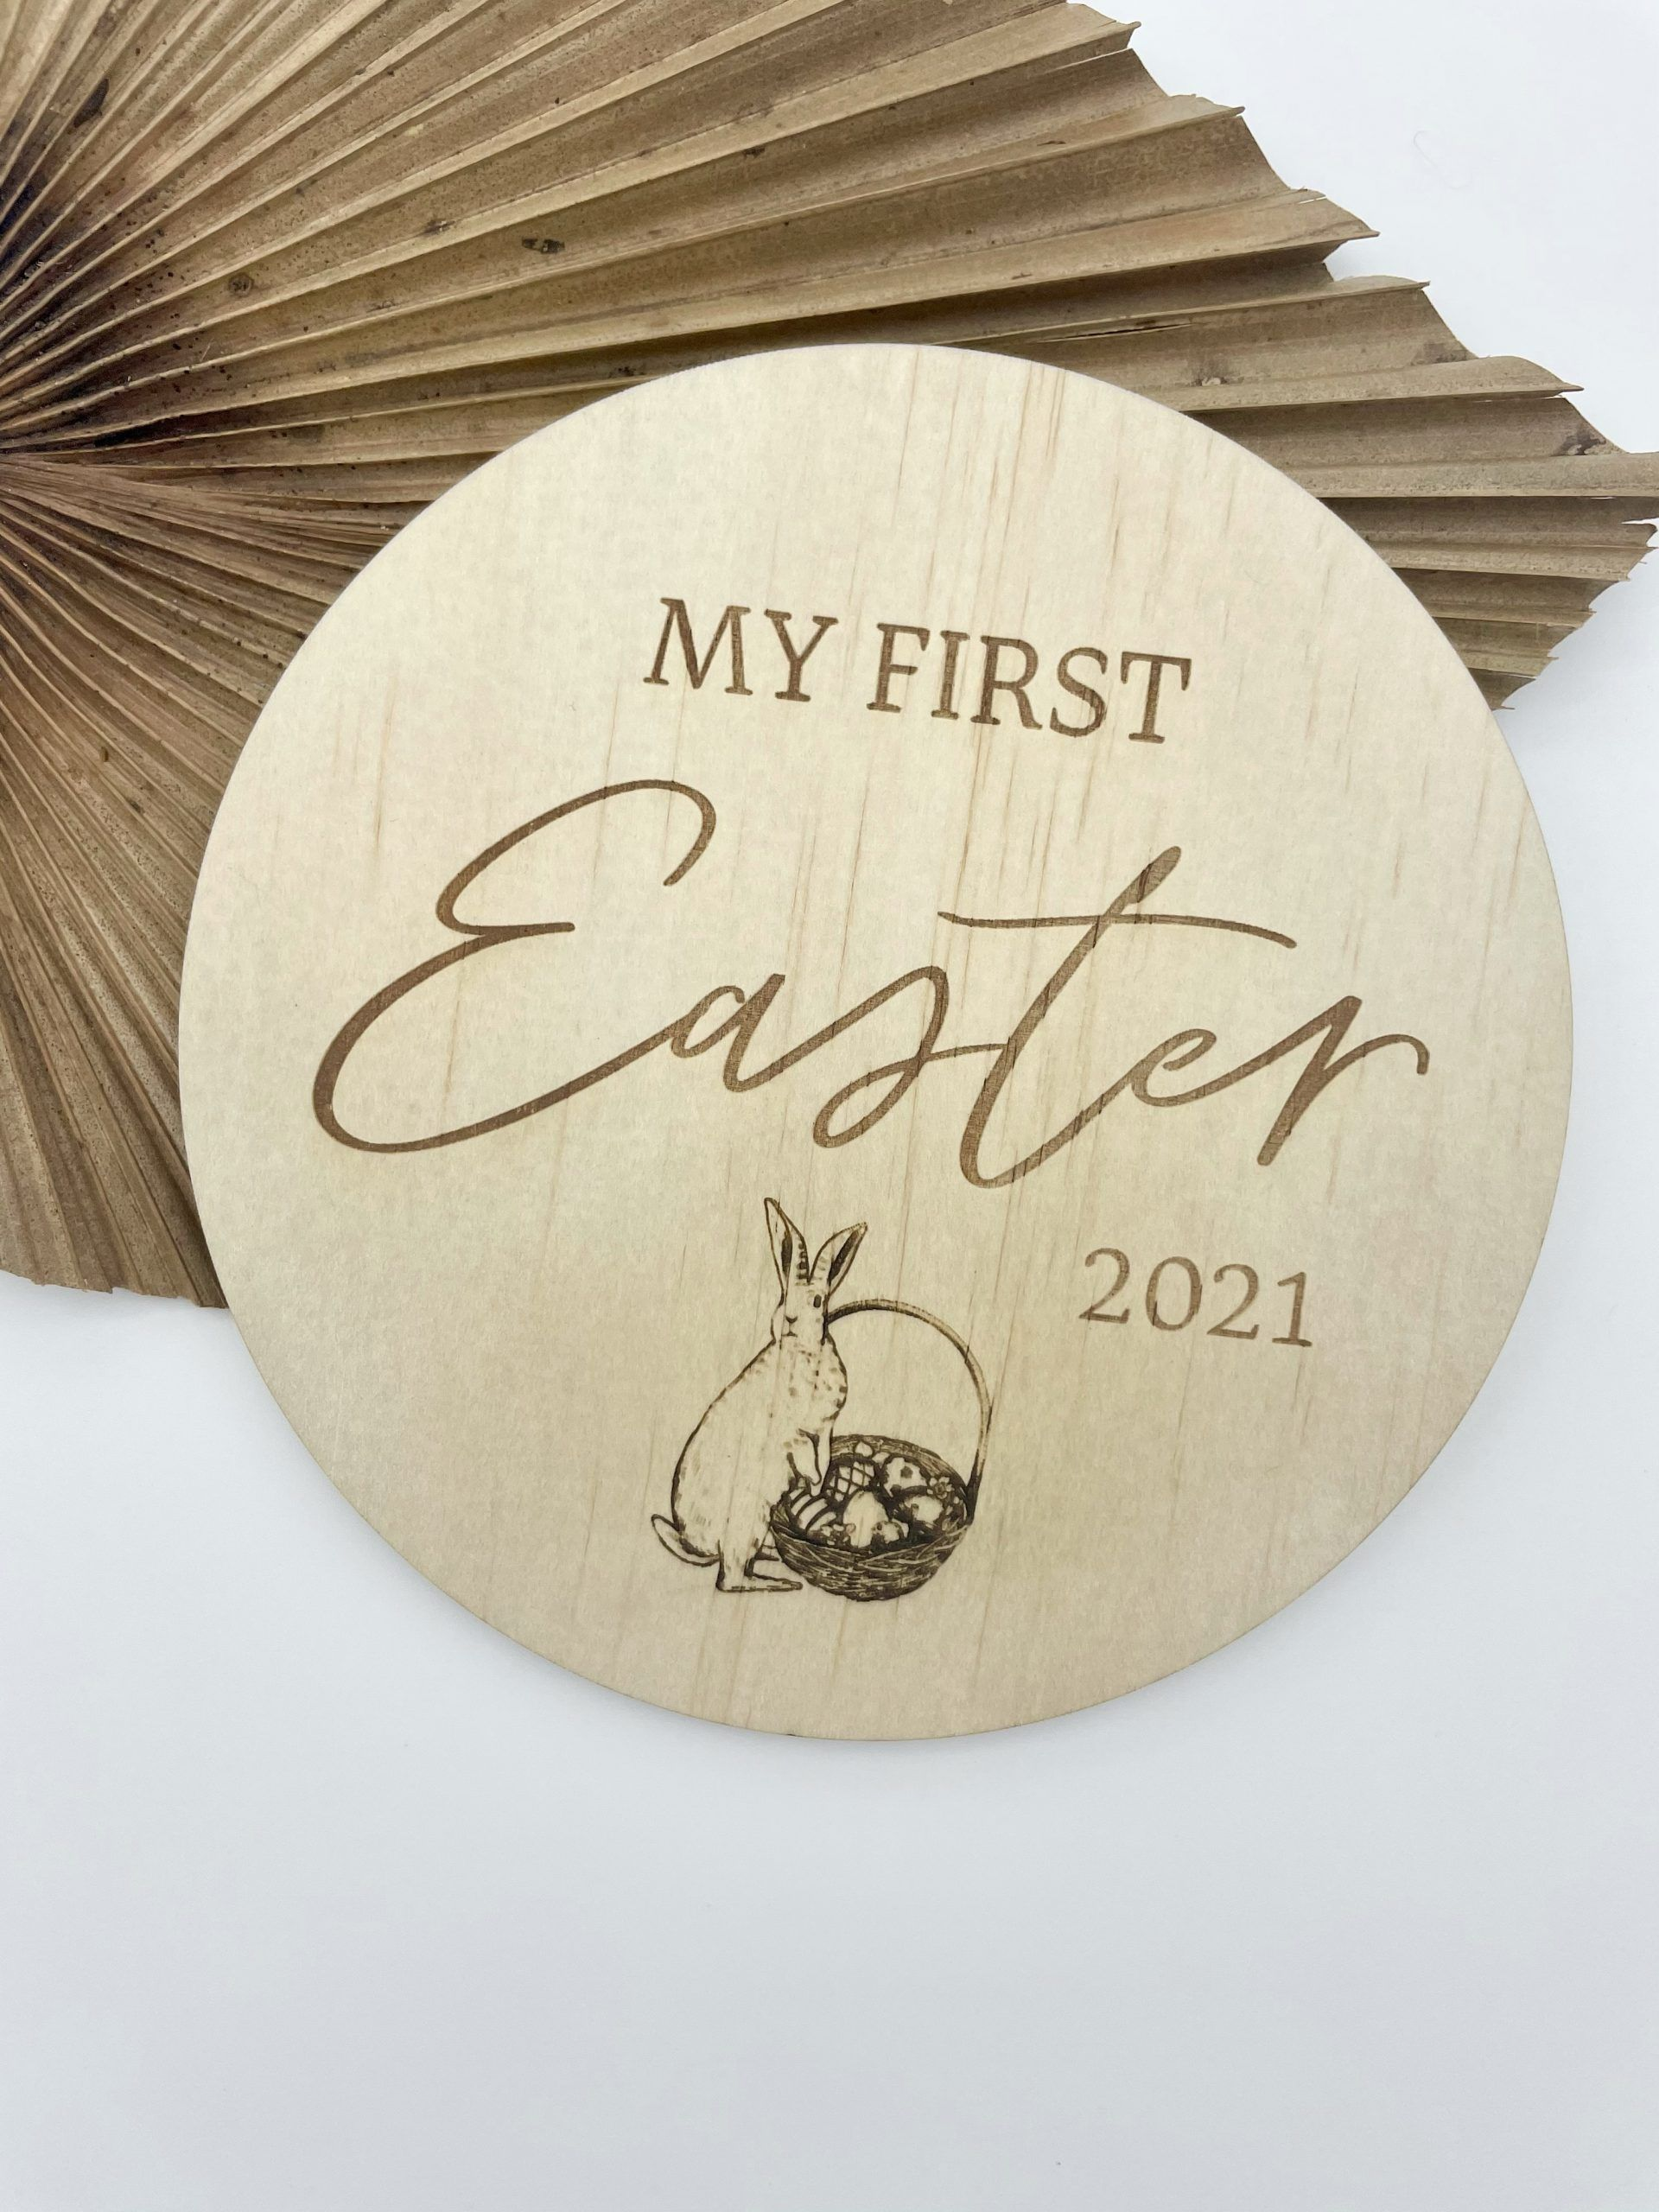 My first Easter sign - Timber Tinkers